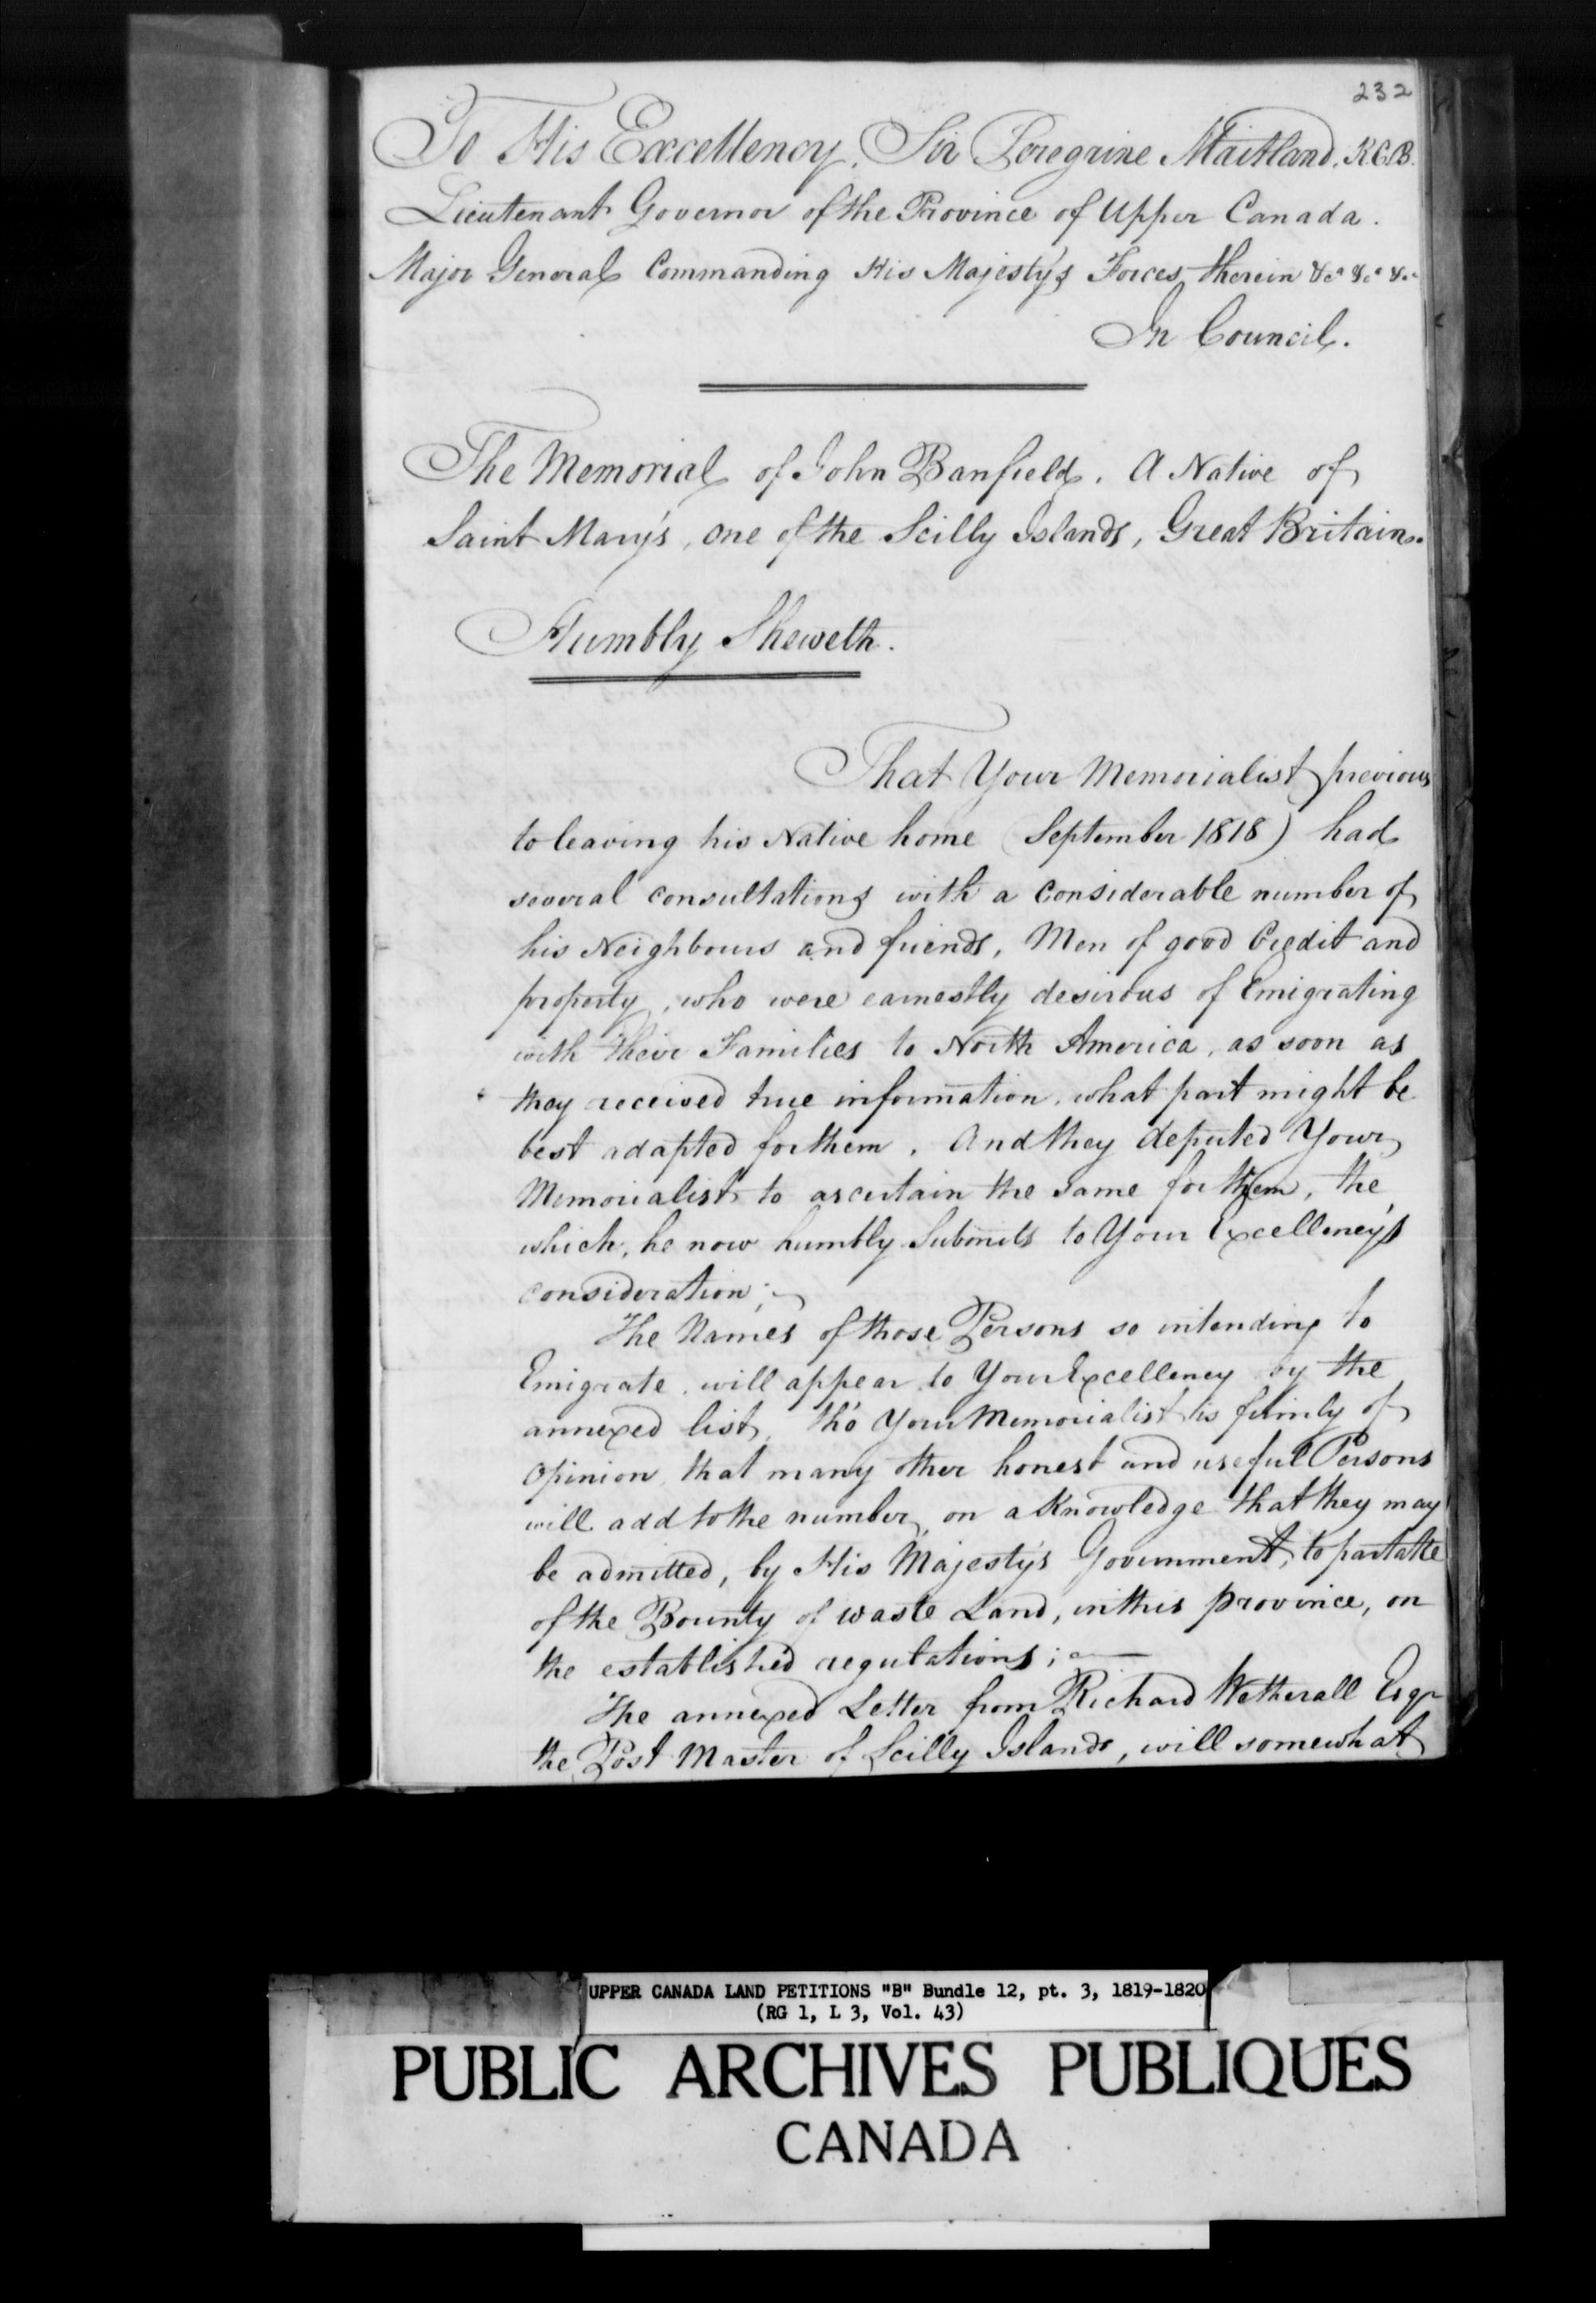 Title: Upper Canada Land Petitions (1763-1865) - Mikan Number: 205131 - Microform: c-1625